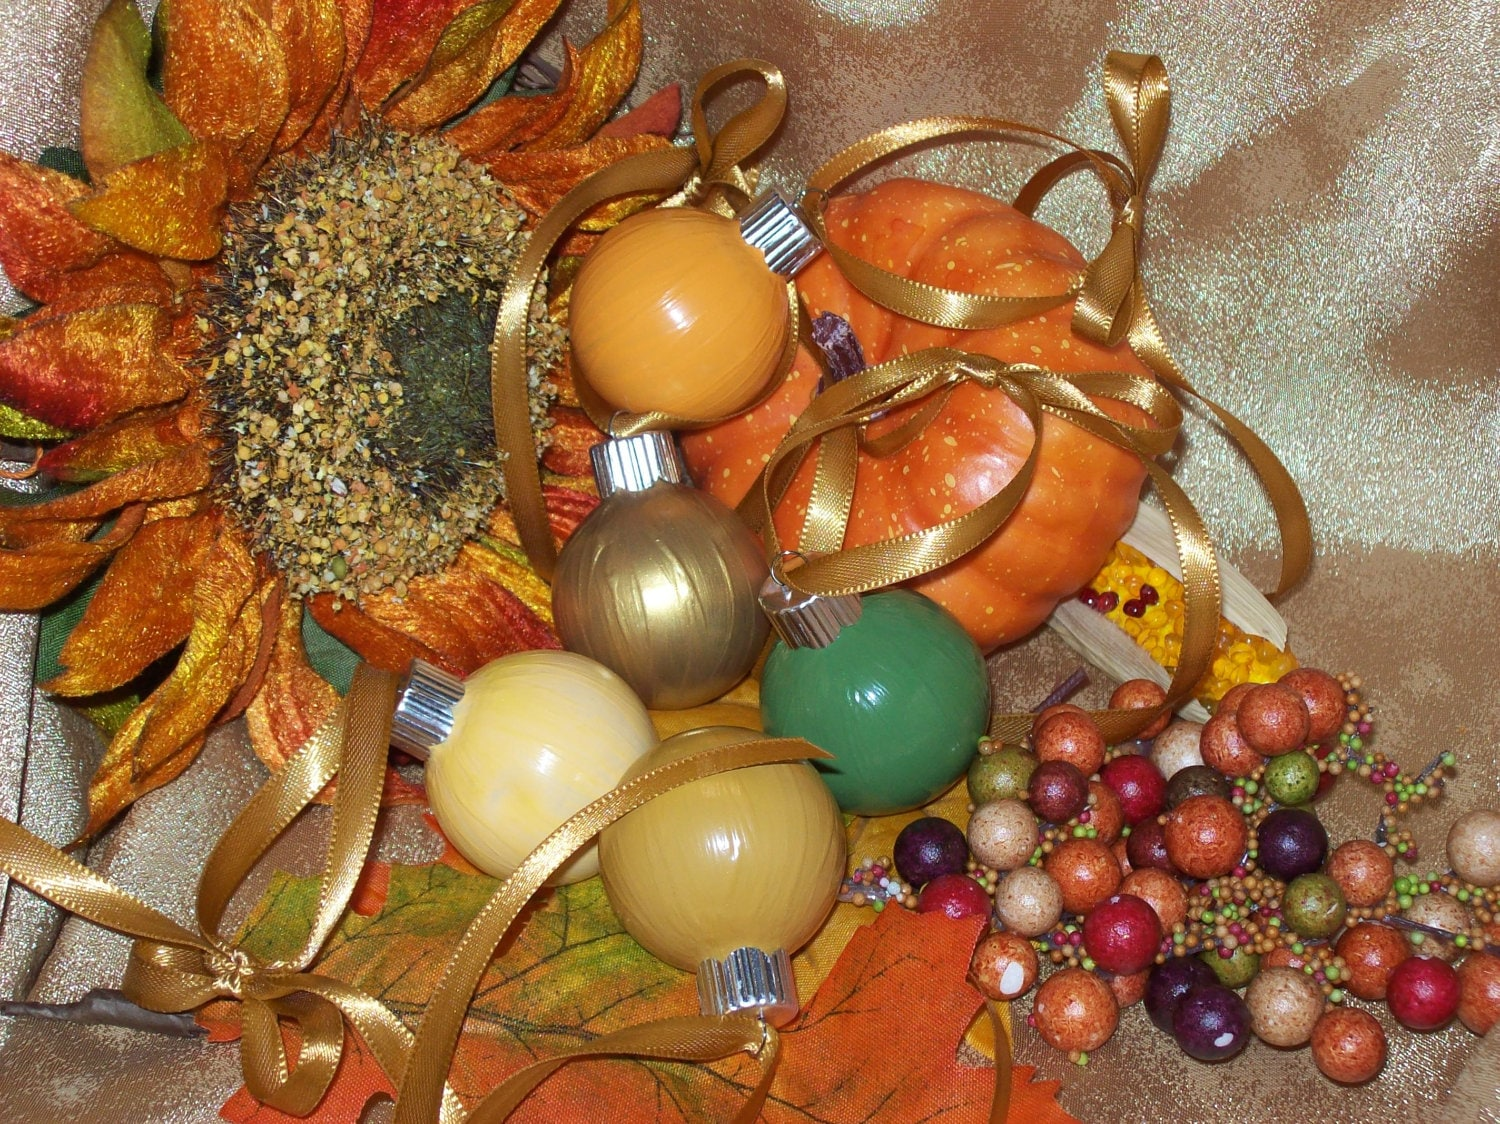 ... Decoration Ornaments Hanging or Centerpiece Dining Table Scape Set of